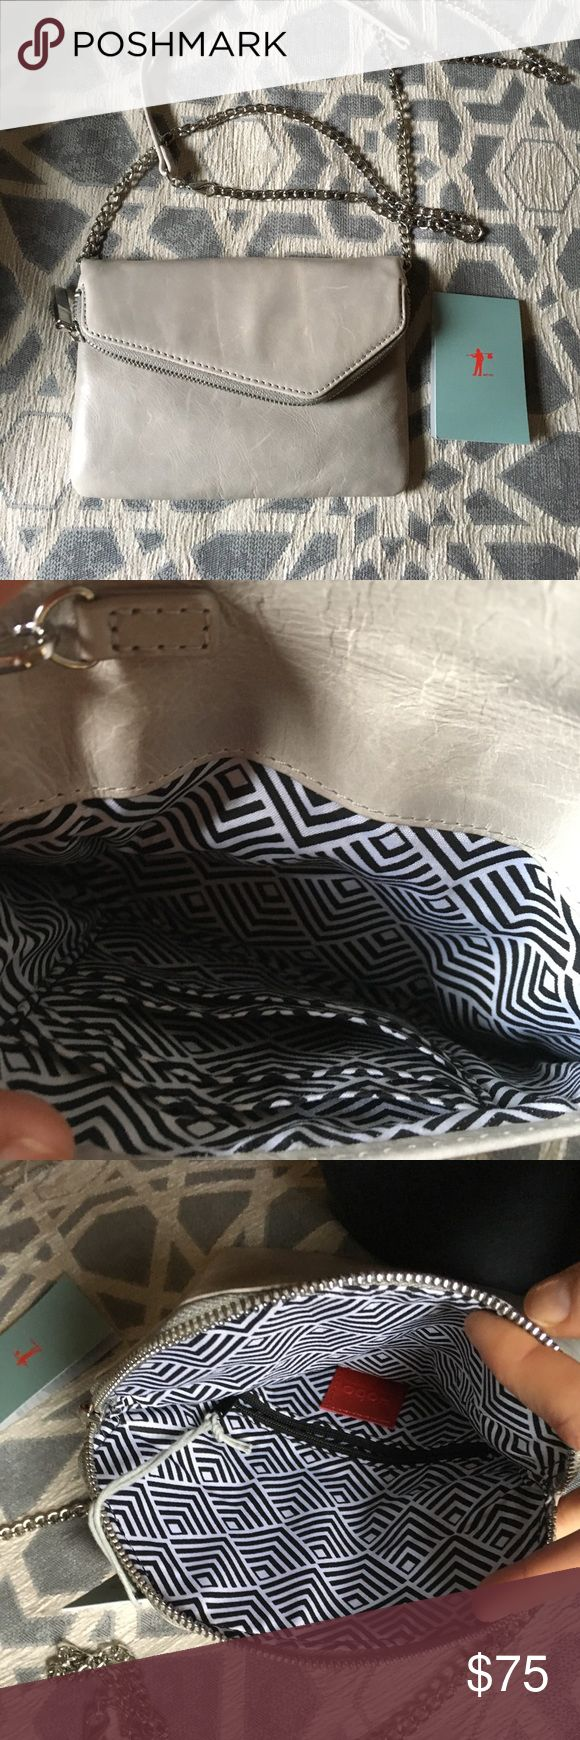 HOBO Grey and Silver Clutch Cross-body Bag NWT New with tags, Hobo International grey leather cross body clutch bag. Detachable and adjustable straps. HOBO Bags